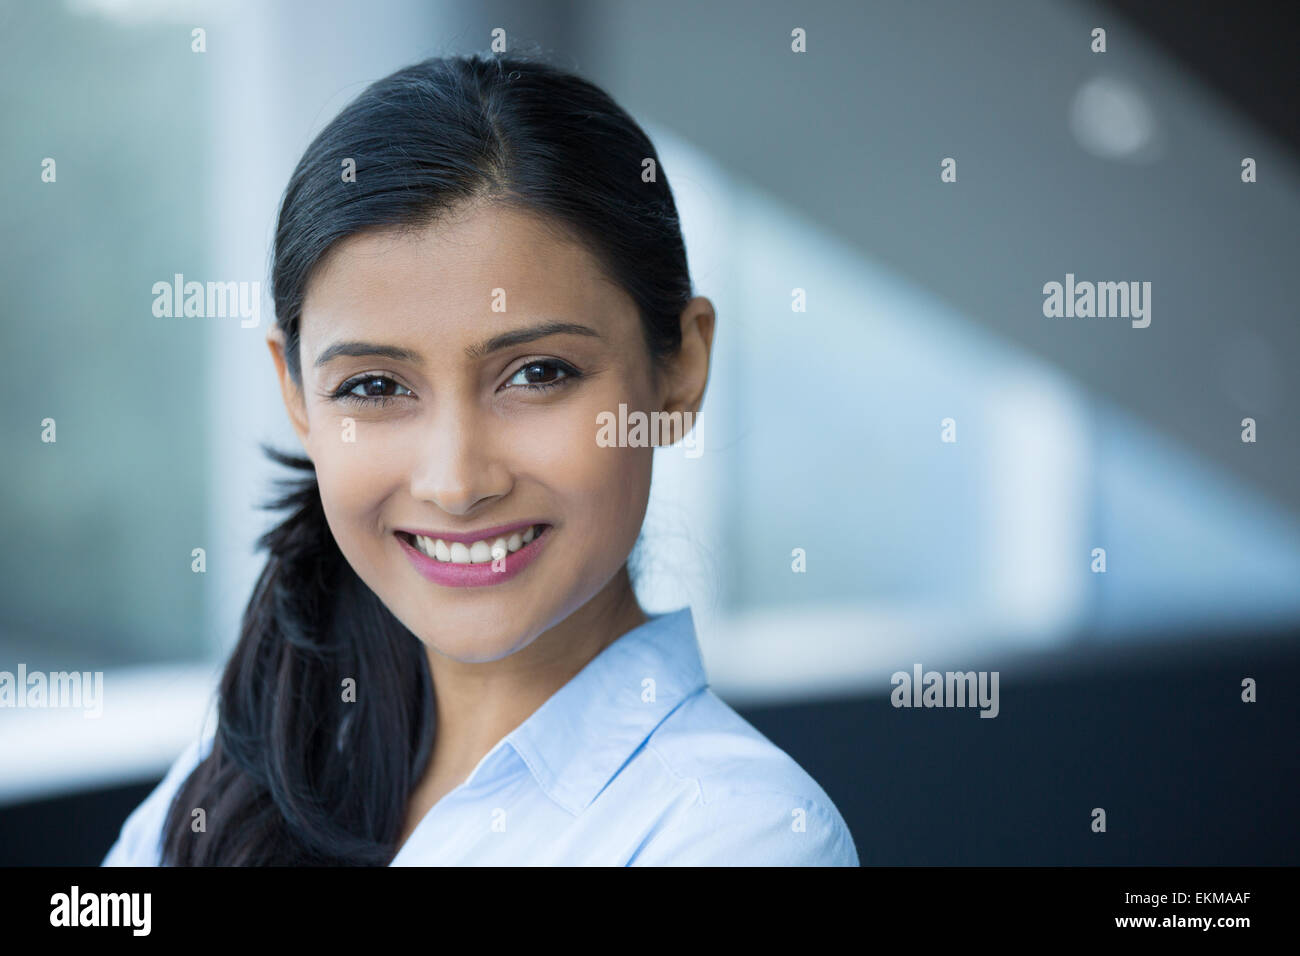 Closeup portrait, young professional, beautiful confident woman in blue shirt, friendly personality, smiling isolated - Stock Image